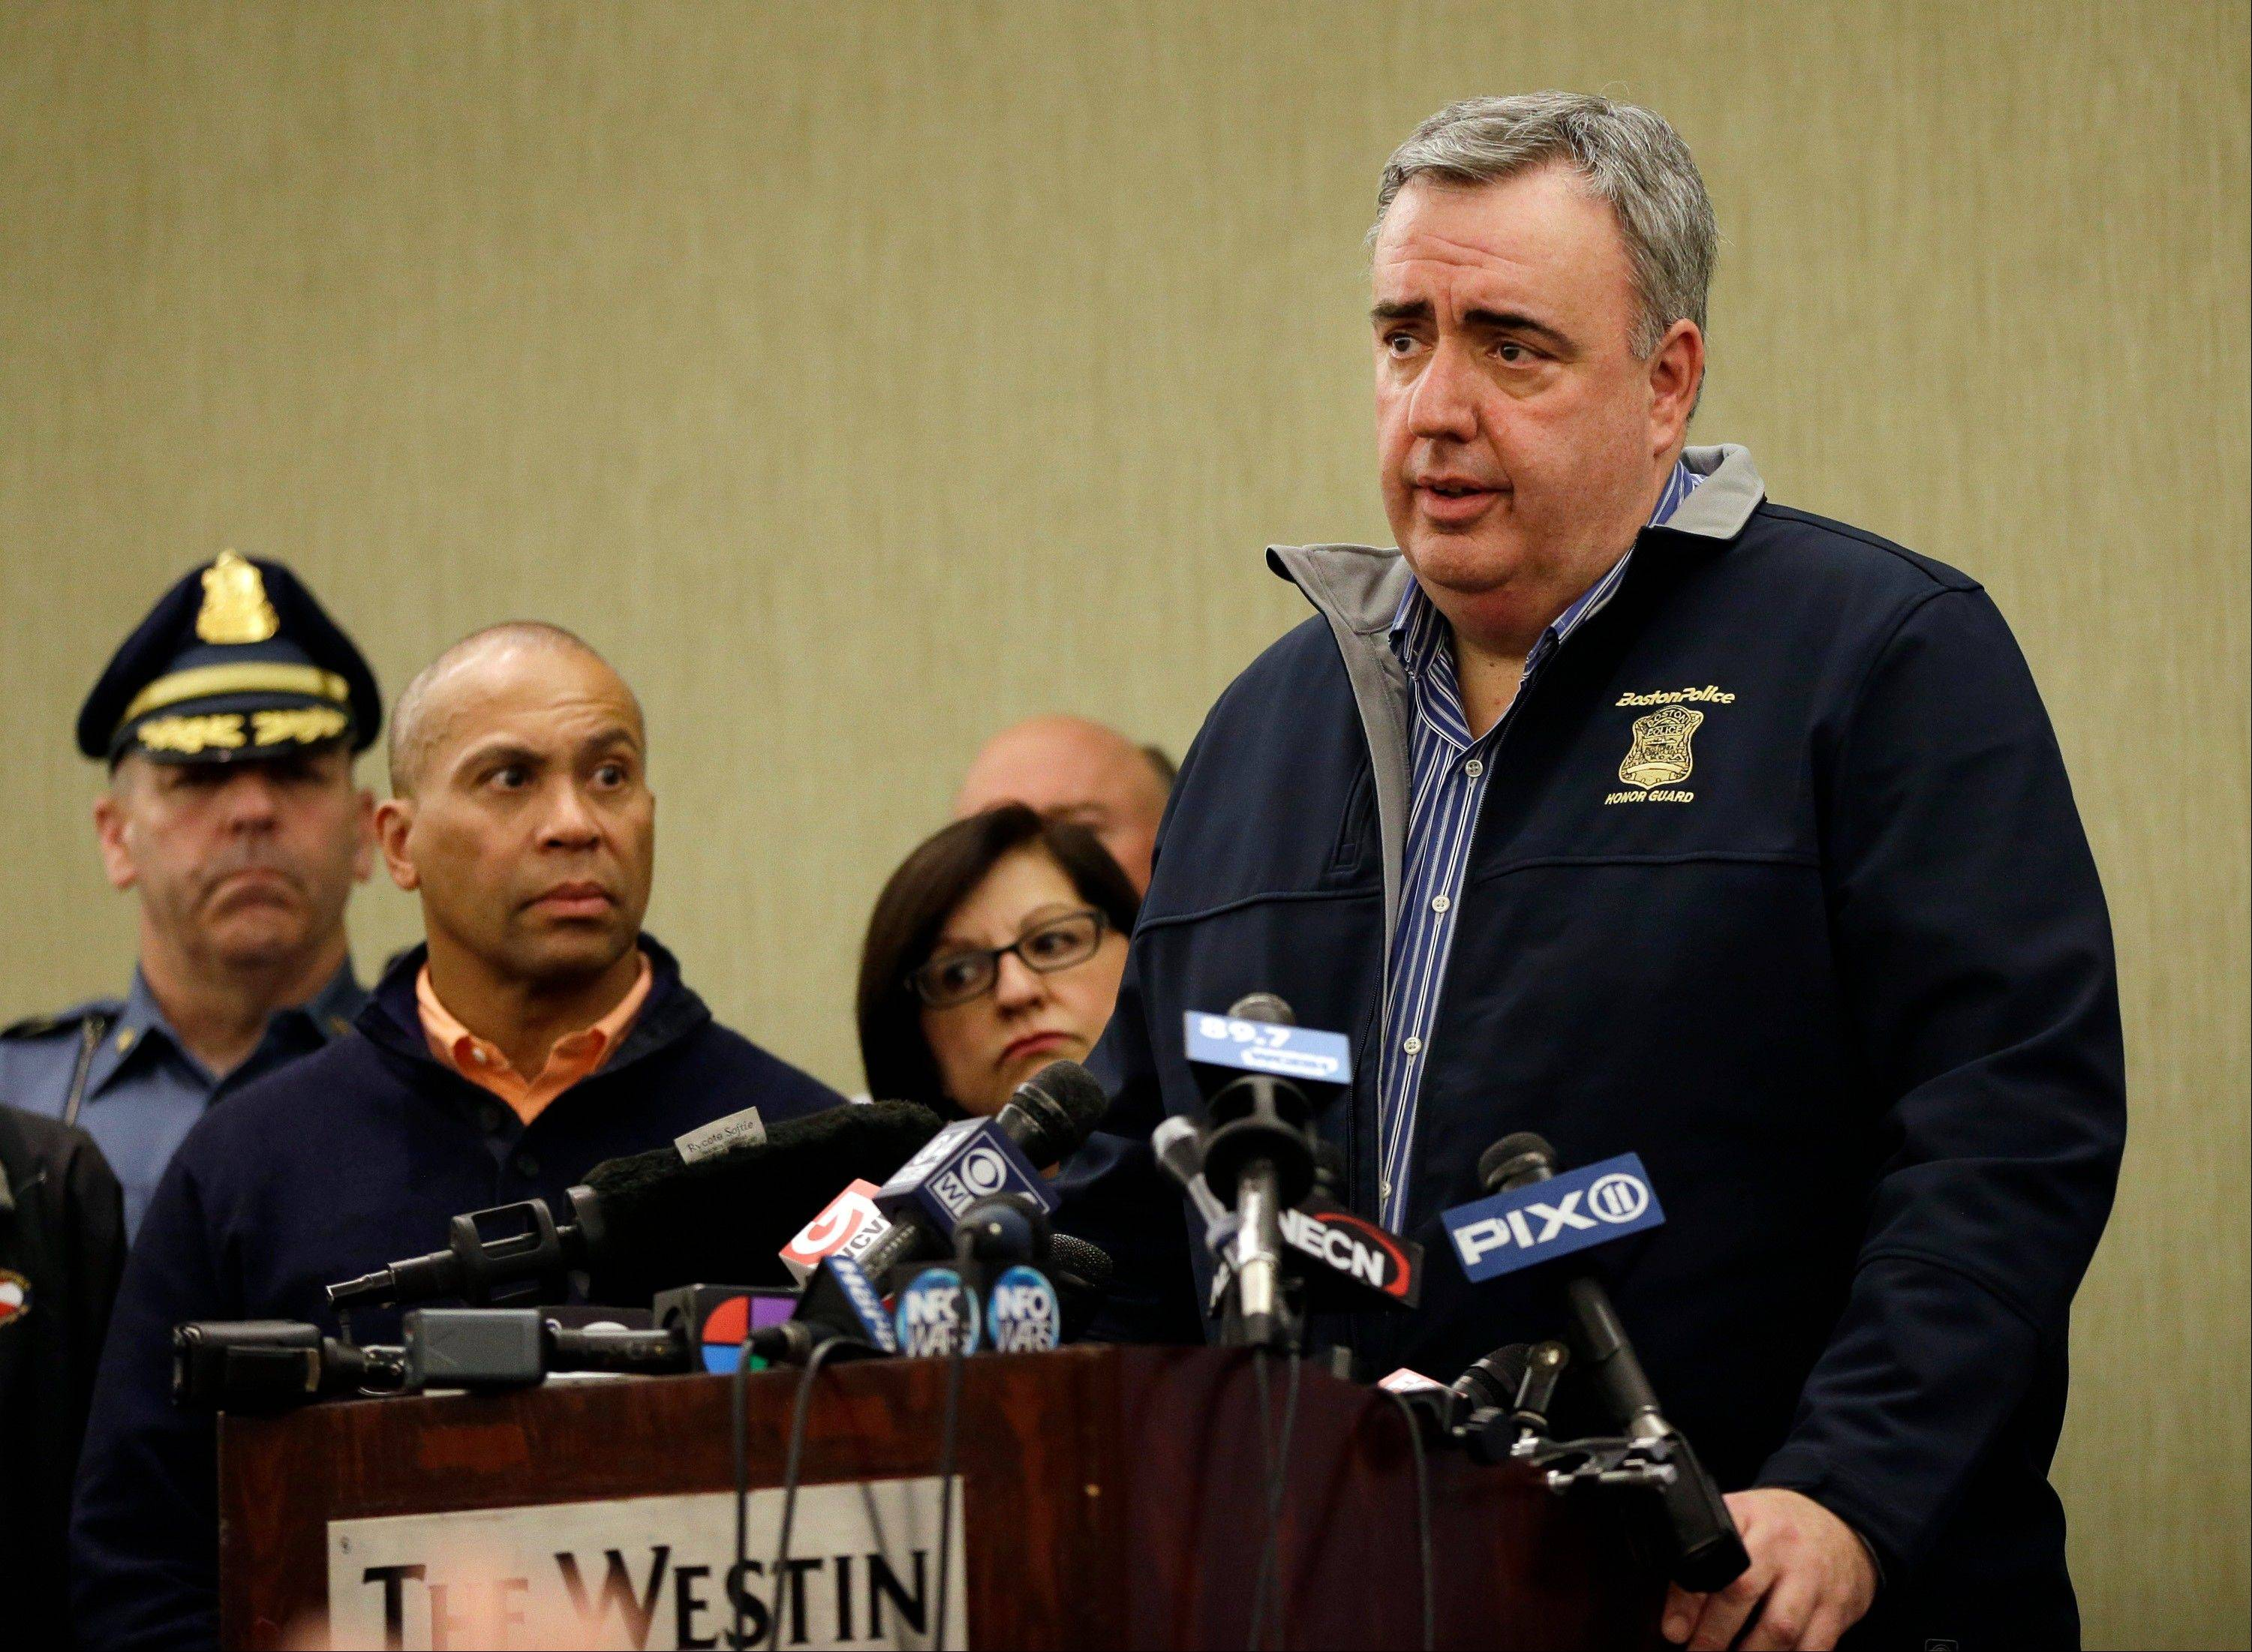 Boston Police Commissioner Ed Davis speaks Monday as Massachusetts Gov. Deval Patrick listens, second from left, at a news conference in Boston regarding two bombs which exploded in the street near the finish line of the Boston Marathon on Monday, killing three people and injuring more than 130.